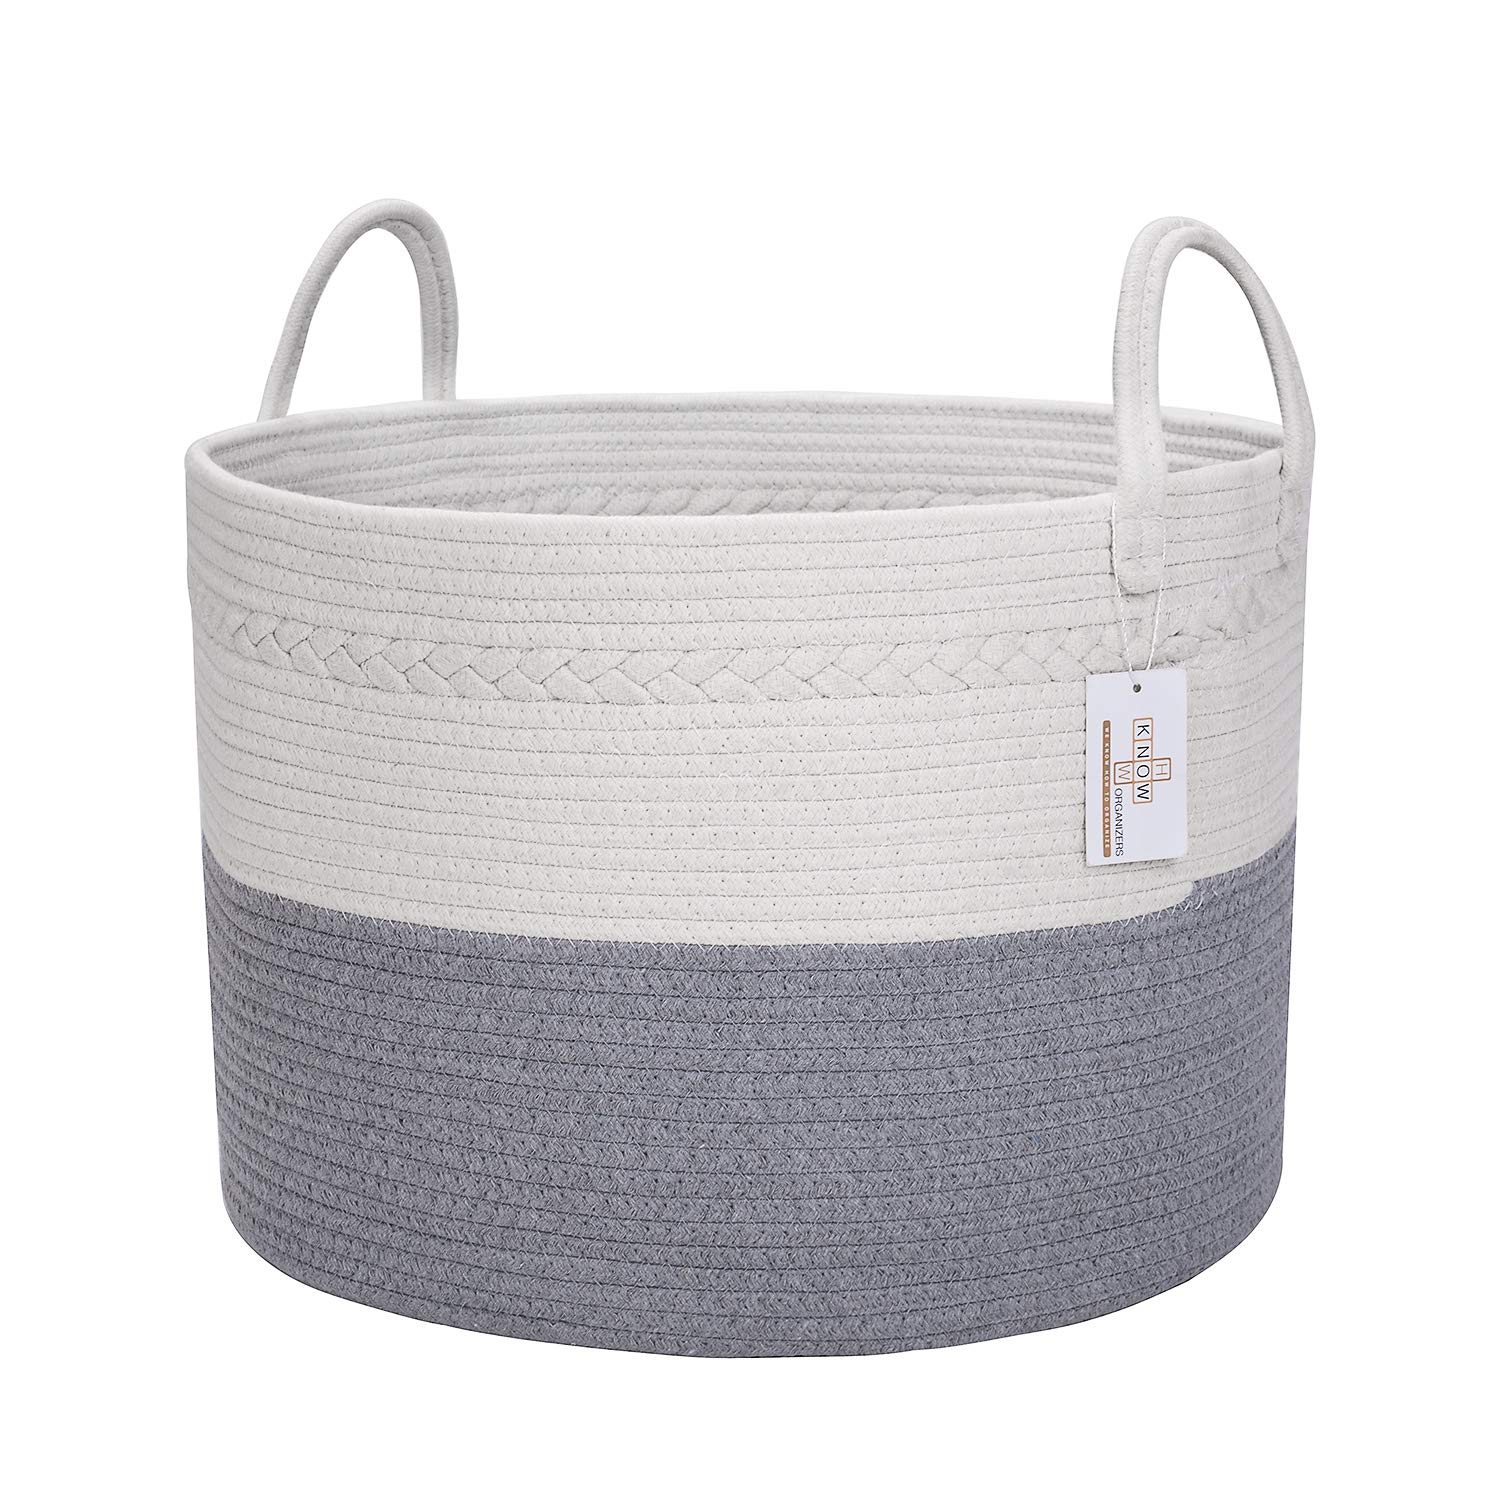 Know How Organizers Laundry Basket, Toy Bin, Dog Toy Basket, Cotton Woven Rope Basket, XXL Blanket Basket, Long Handles, Decorative Nursery Hamper, Grey White 20'' x 13'' Wide Extra Large by Know How Organizers